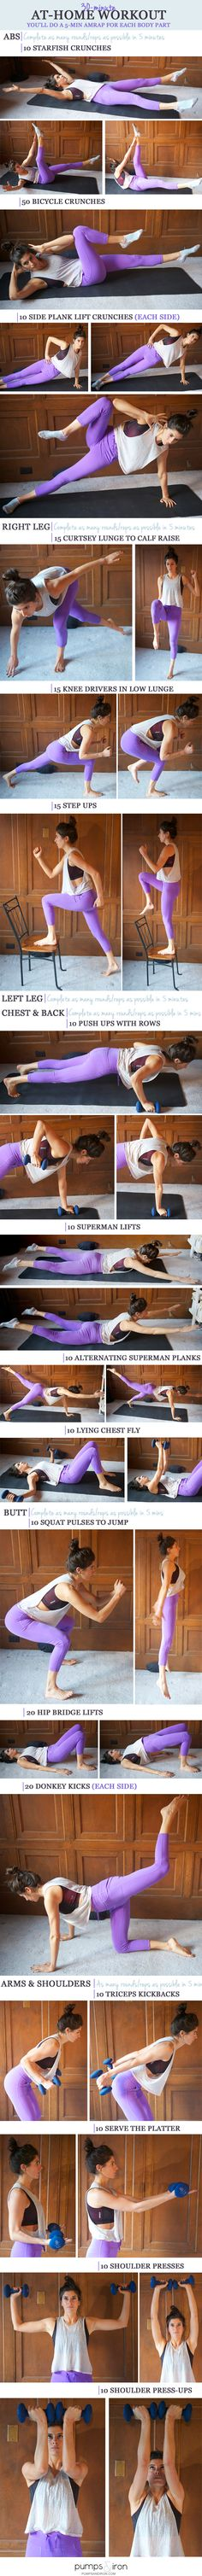 30-Minute At-Home Workout -- you'll spend 5 minutes on each body part At Home Workouts, Full Body Workout At Home, Body Workouts, Fun Workouts, Sport Motivation, Fitness Motivation, Pilates Workout Routine, 30 Min Workout, Workout Routines For Beginners